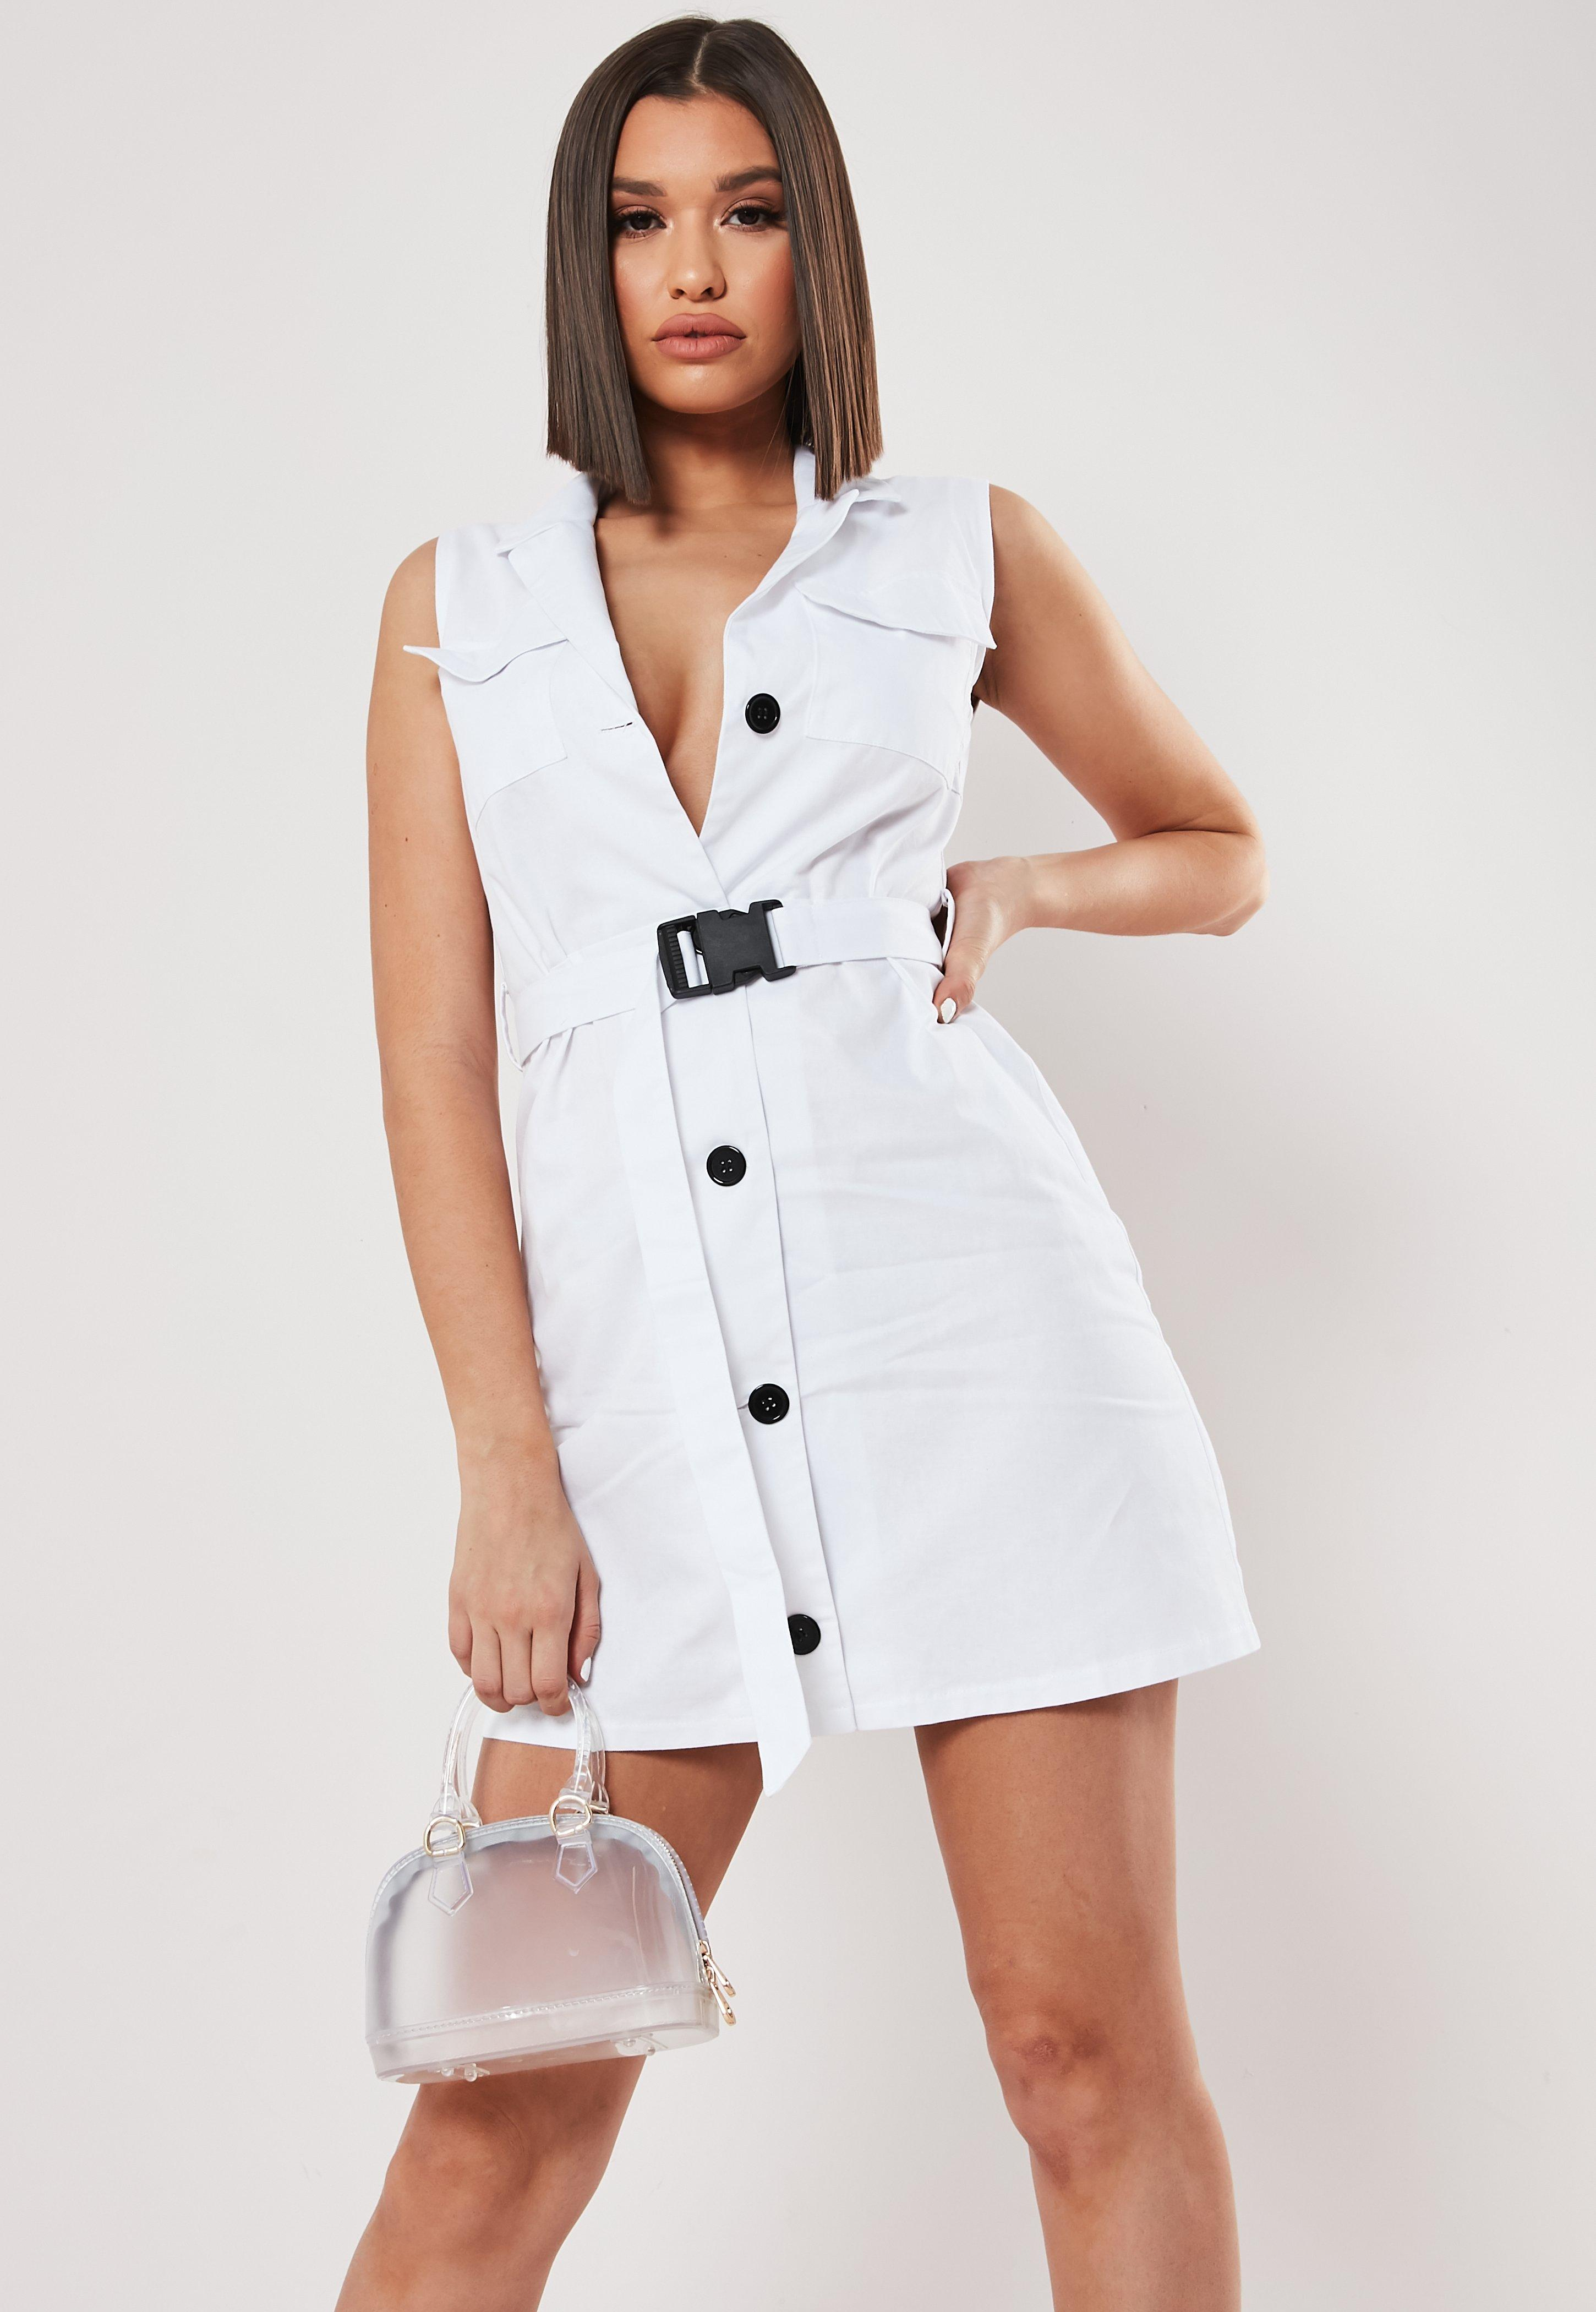 082b303a83a Dresses UK | New Dresses For Women Online | Missguided